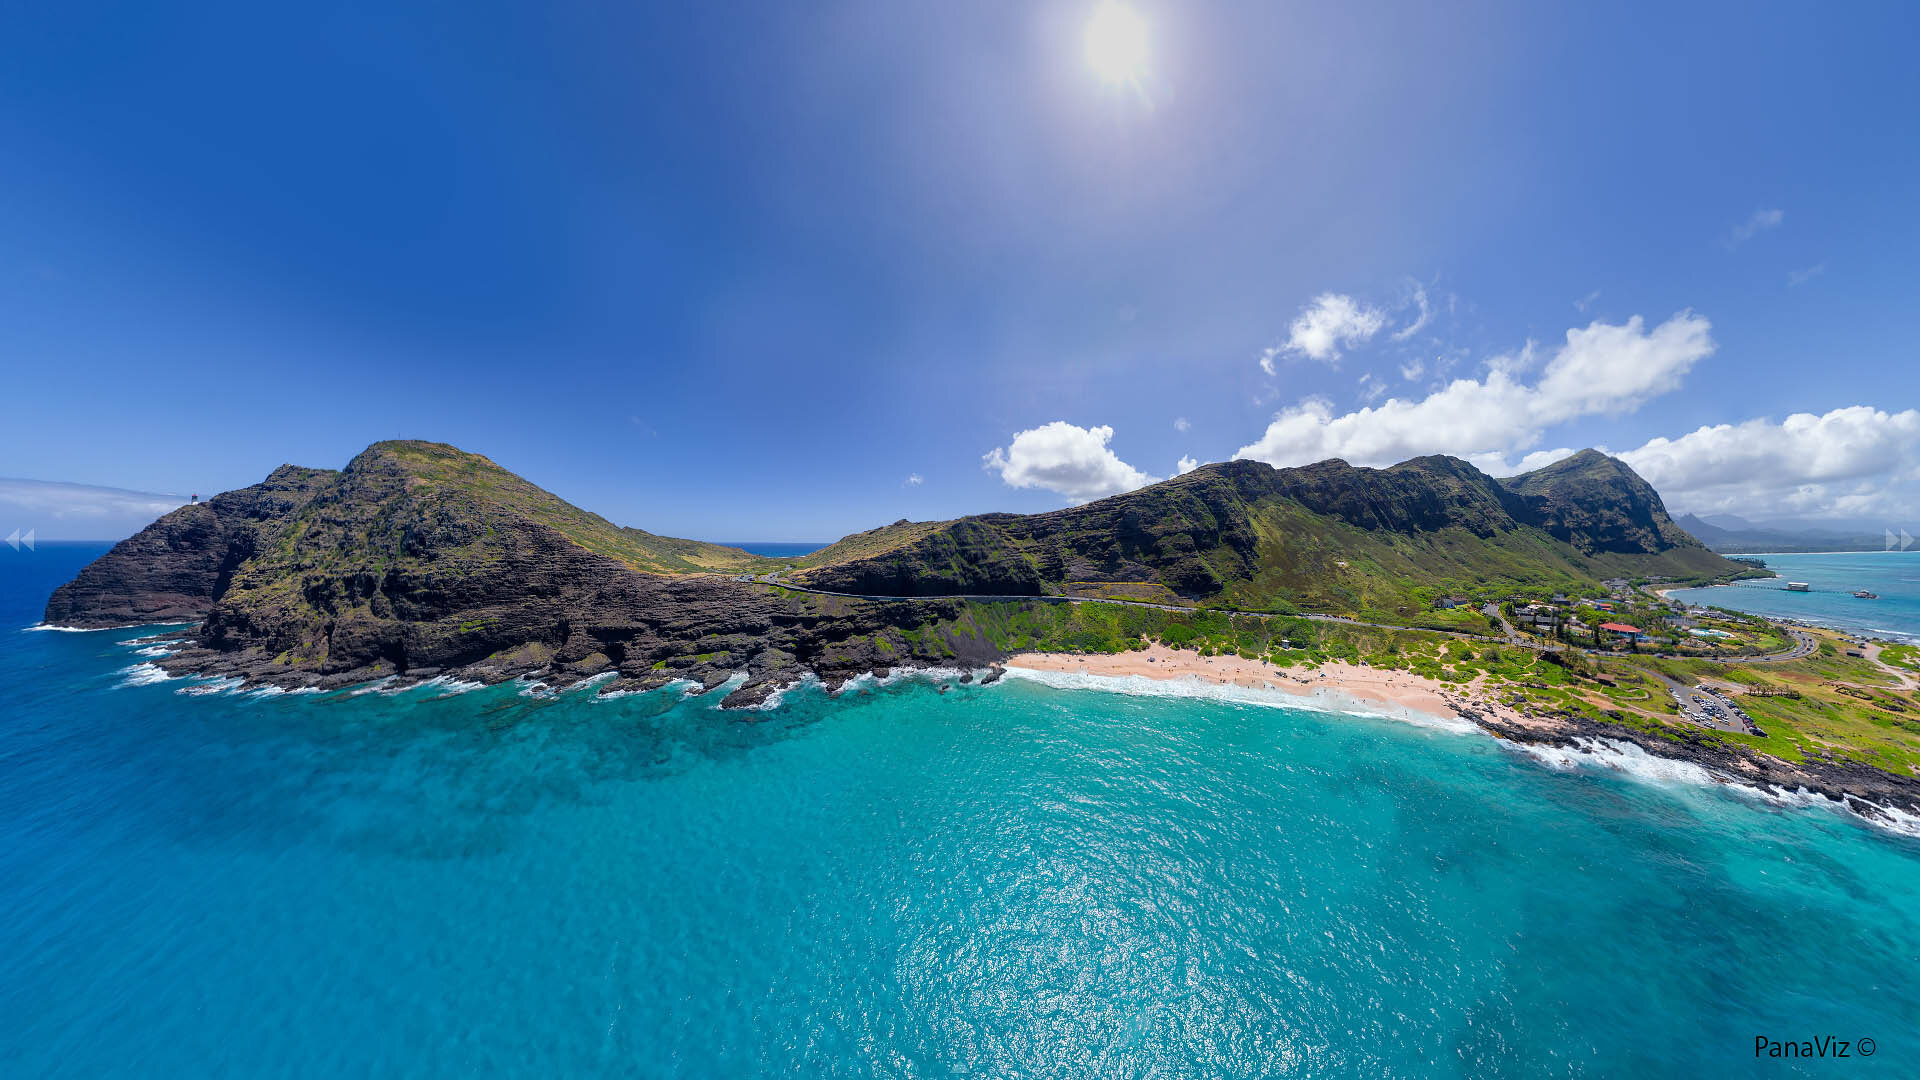 Makaupu'u Beach and Lookout Panorama